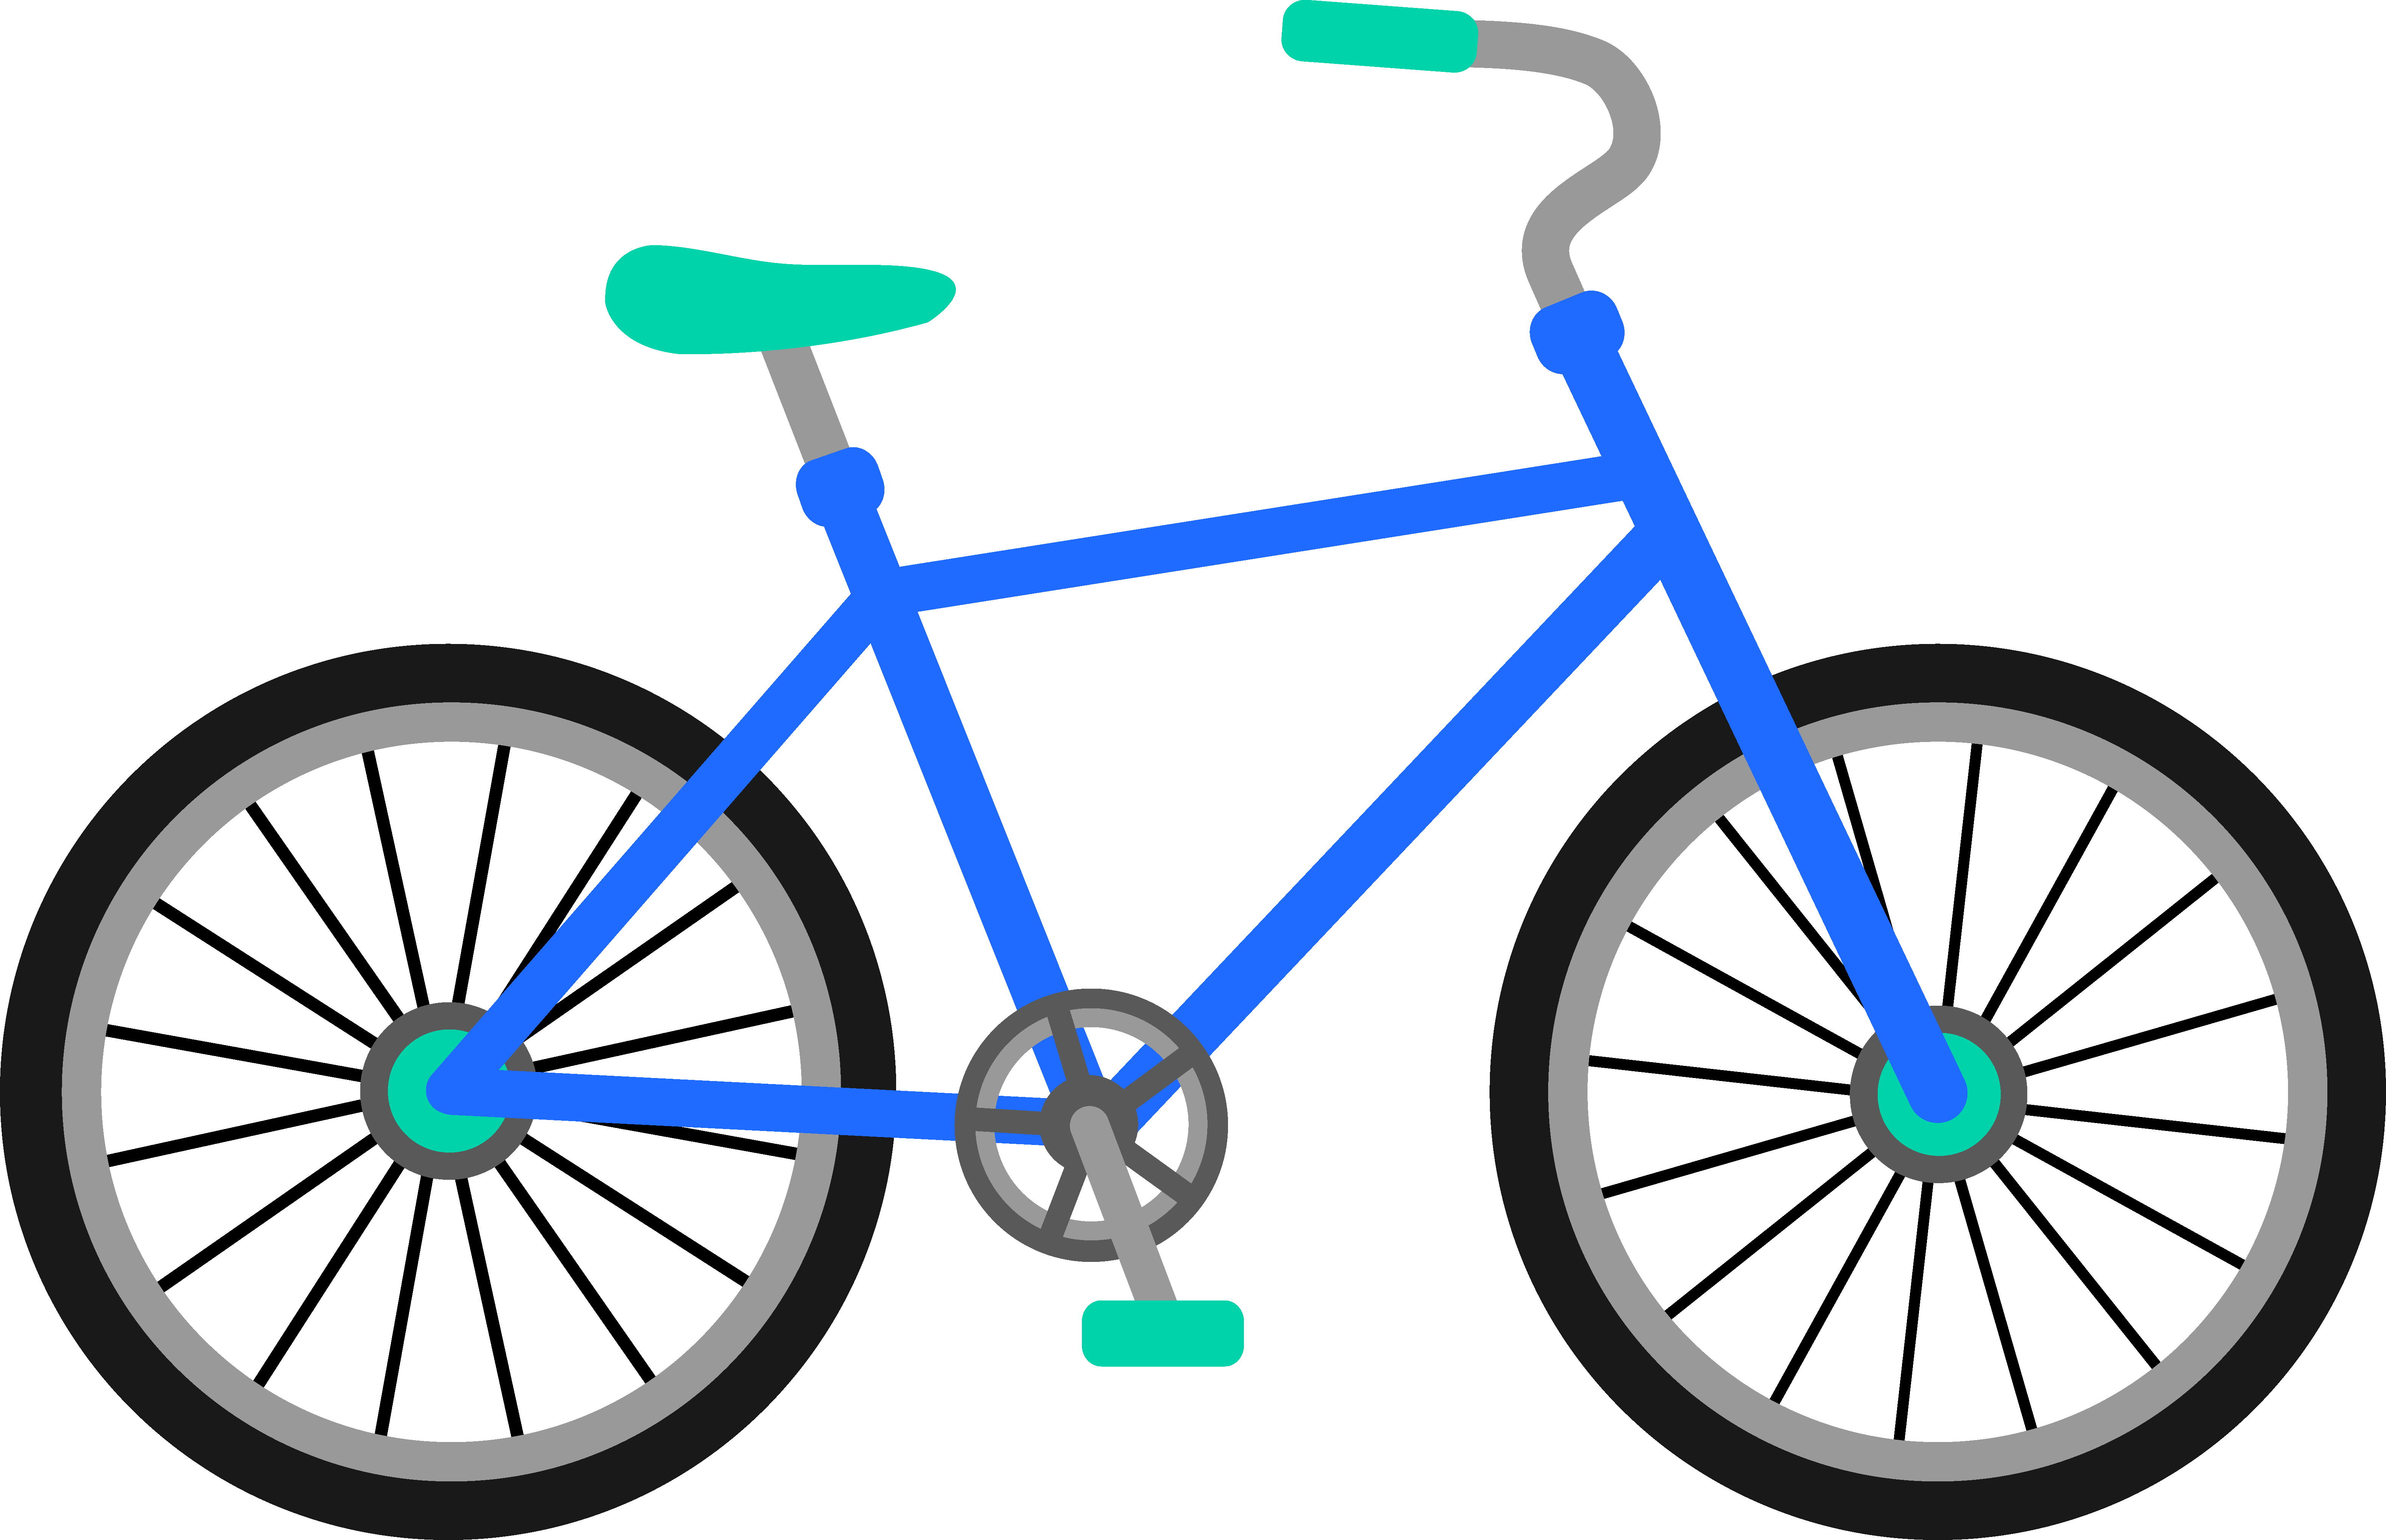 Biking clipart bycycle. Clip art transportation bicycle